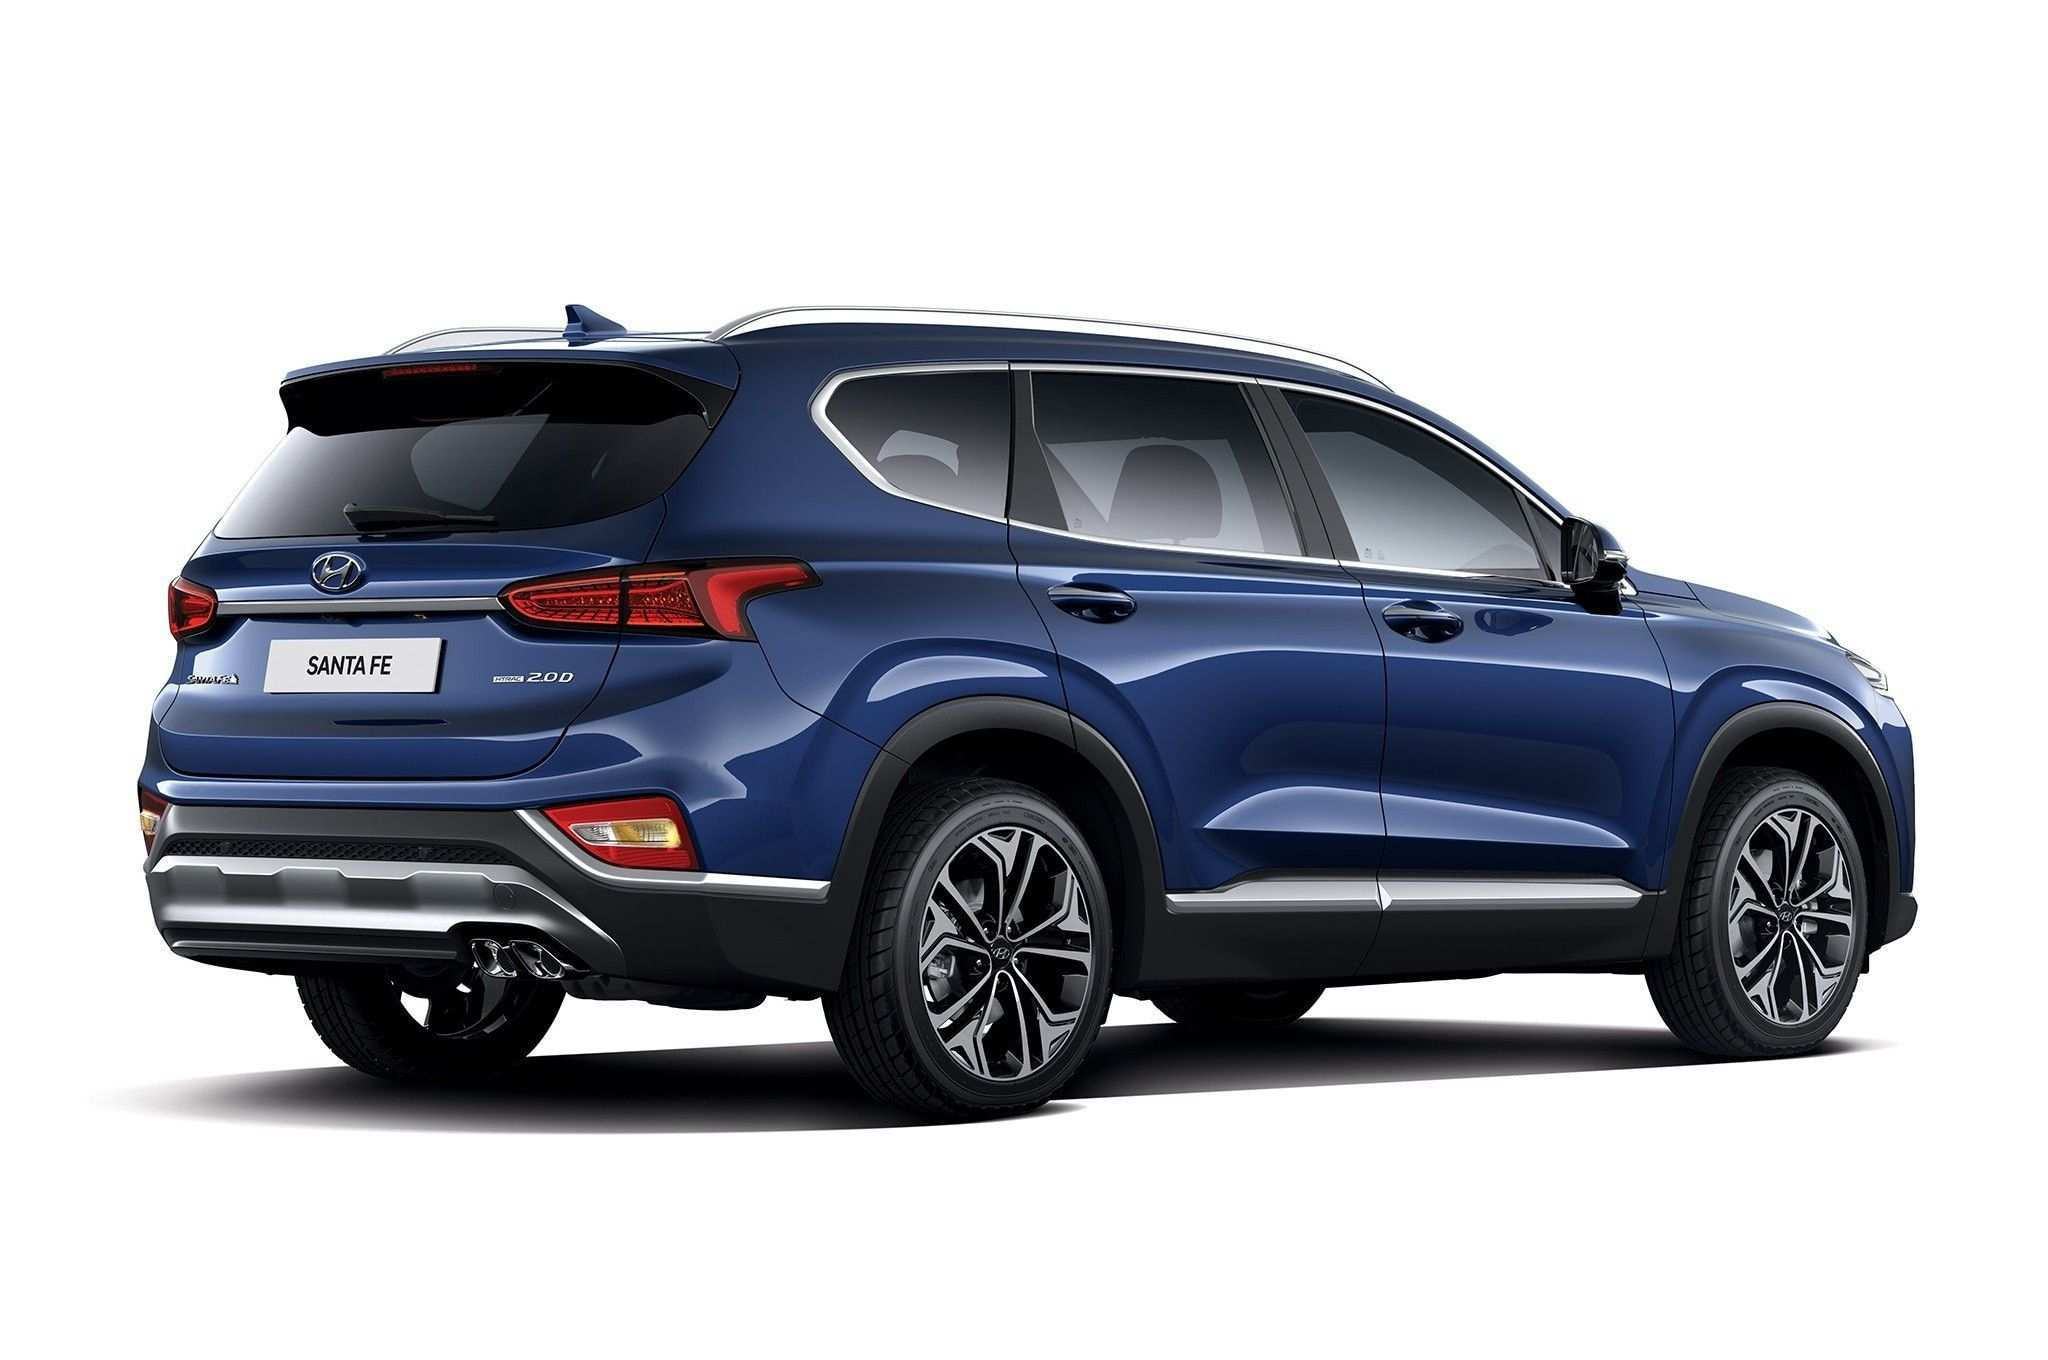 46 All New Nissan X Trail 2020 Review Price